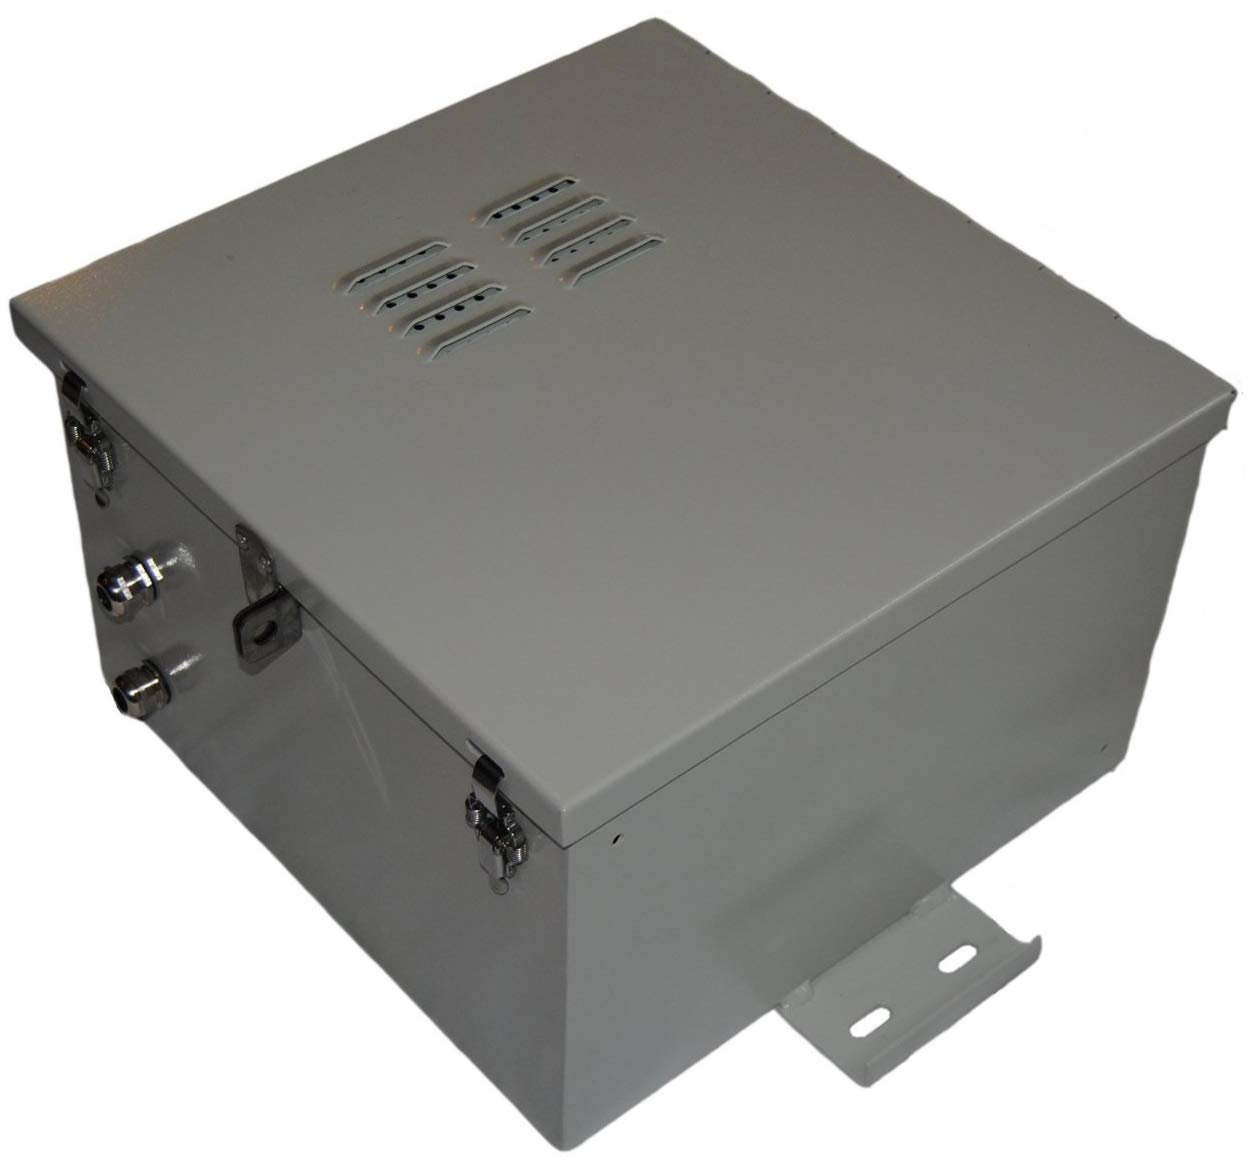 Producing high-quality NEMA Battery Enclosure Reliable and durable NEMA Battery Enclosure Can help to protect and holds batteries Strong and solidly built NEMA Battery Enclosure